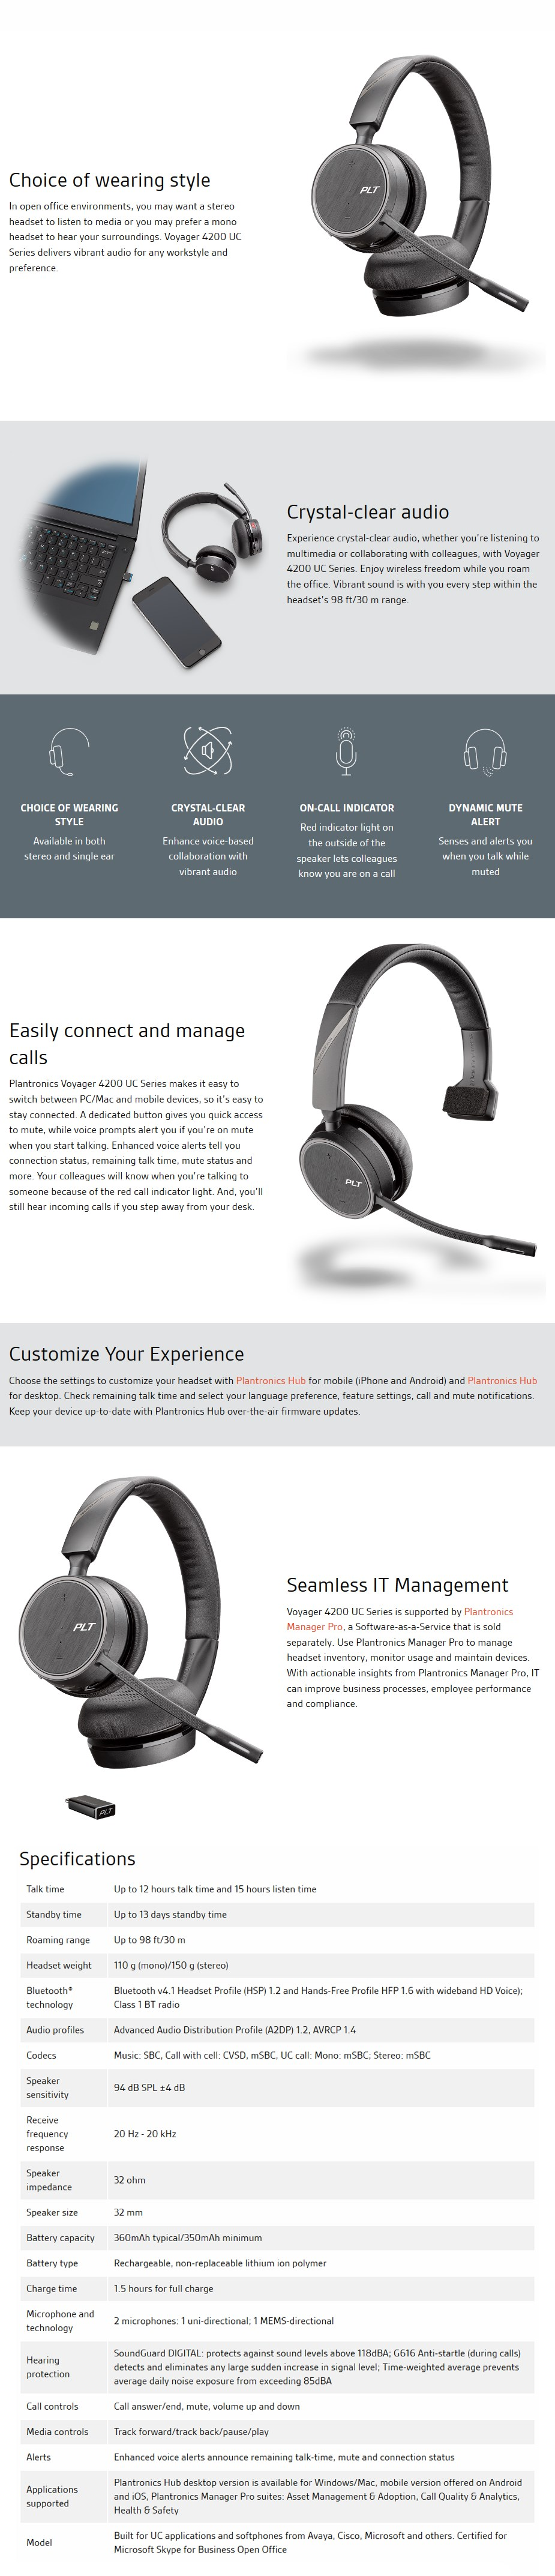 Plantronics Voyager 4220 USB-A Stereo Bluetooth Headset - Desktop Overview 1